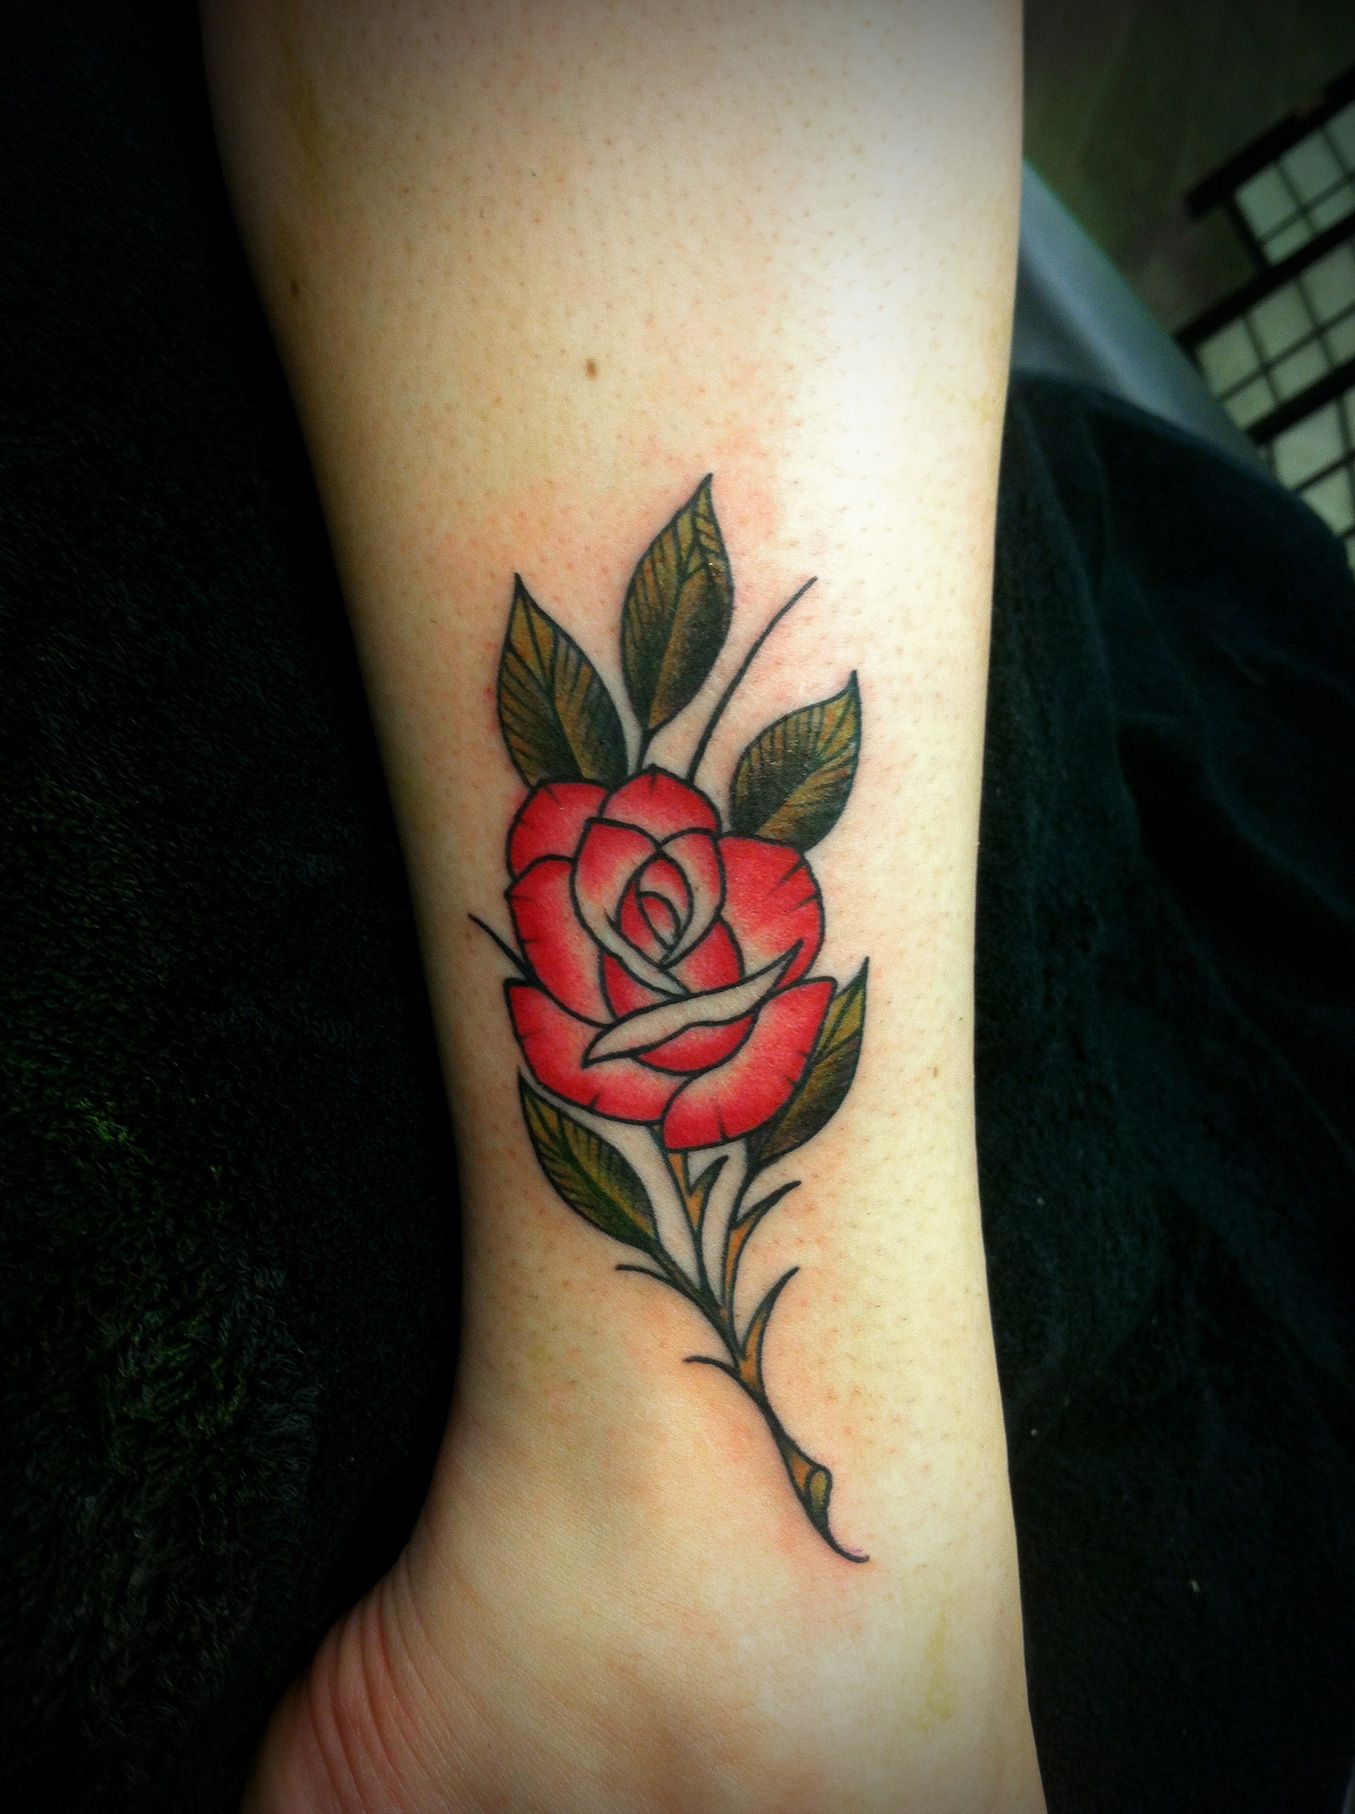 Pin by Emma McClatchey on Ink + Art Small rose tattoo